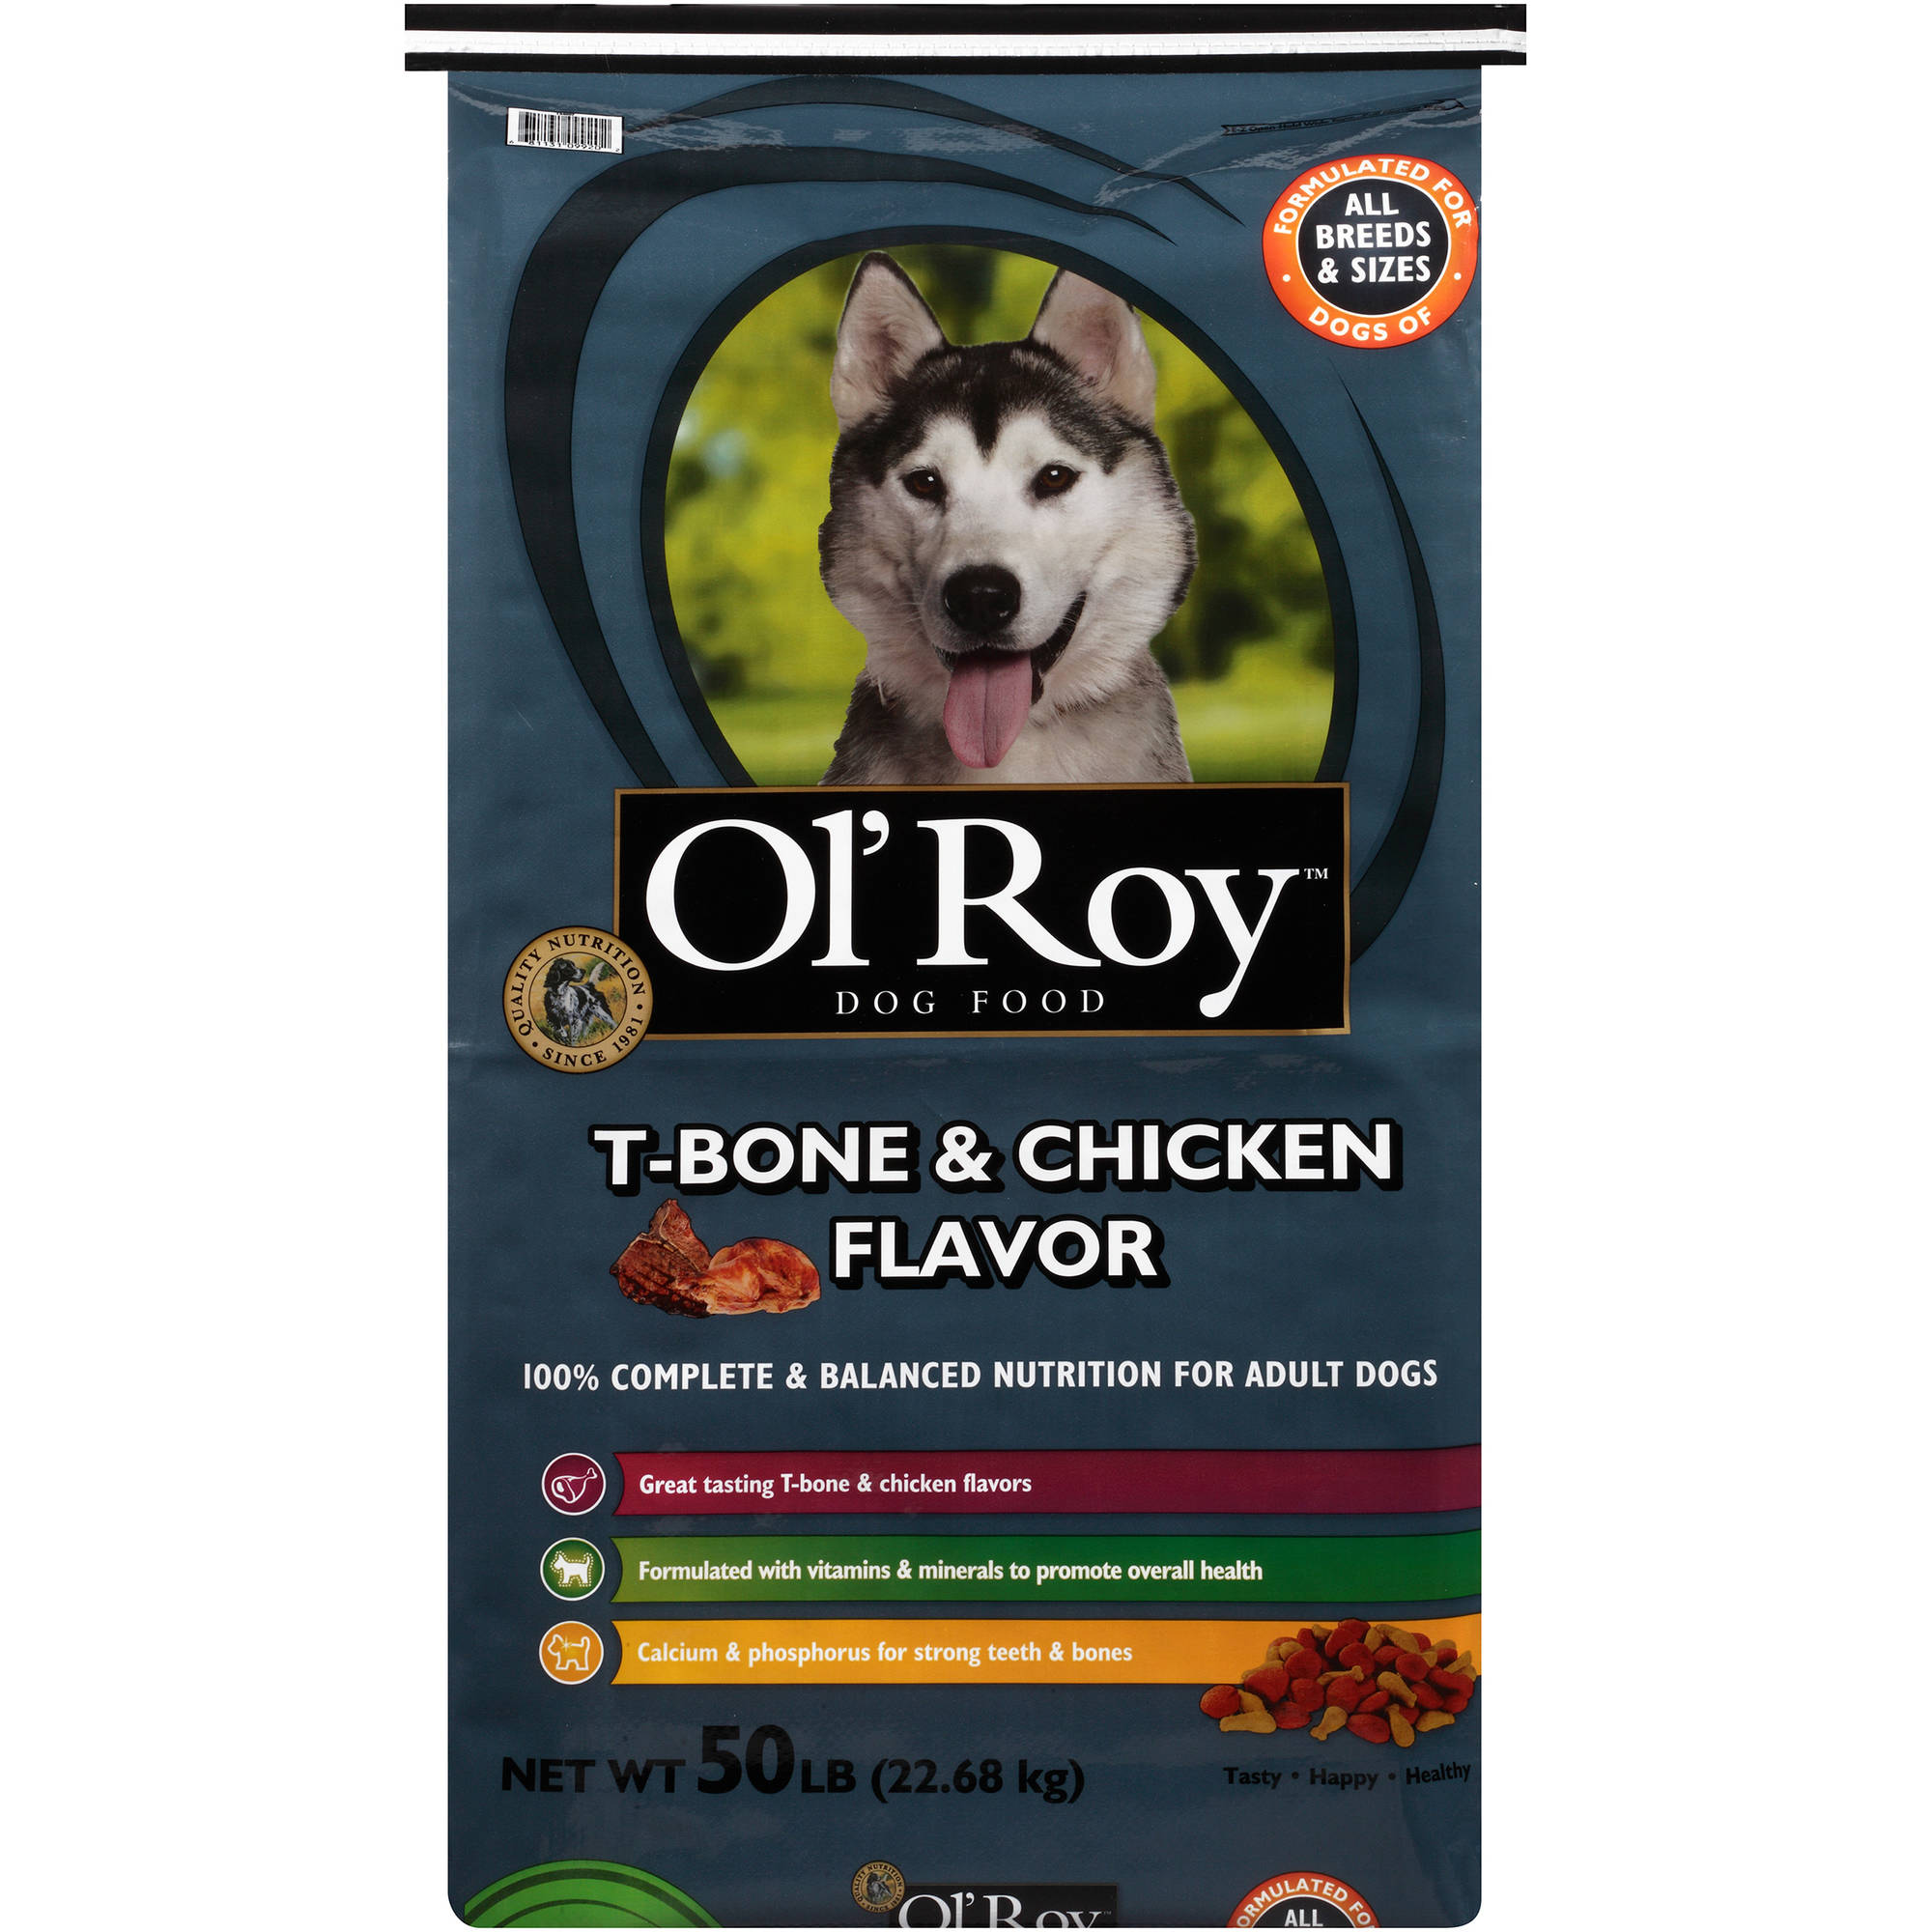 Ol' Roy T-Bone & Chicken Flavor Dog Food, 50 lbs